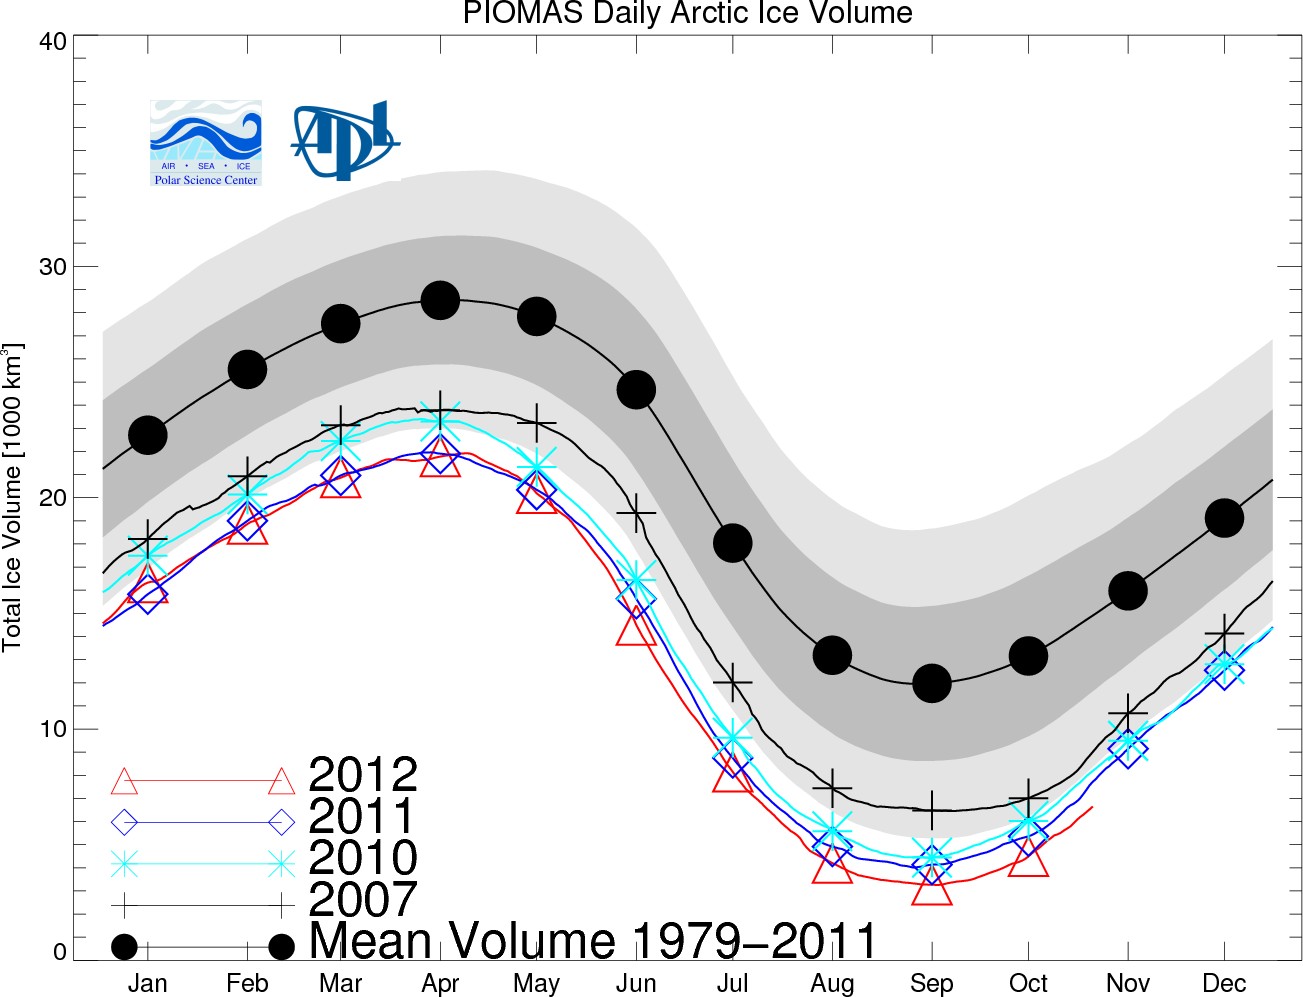 Piomas November Update Shows Sea Ice Thinner Than Ever: Volume More Than  1000 Cubic Kilometers Below 2011